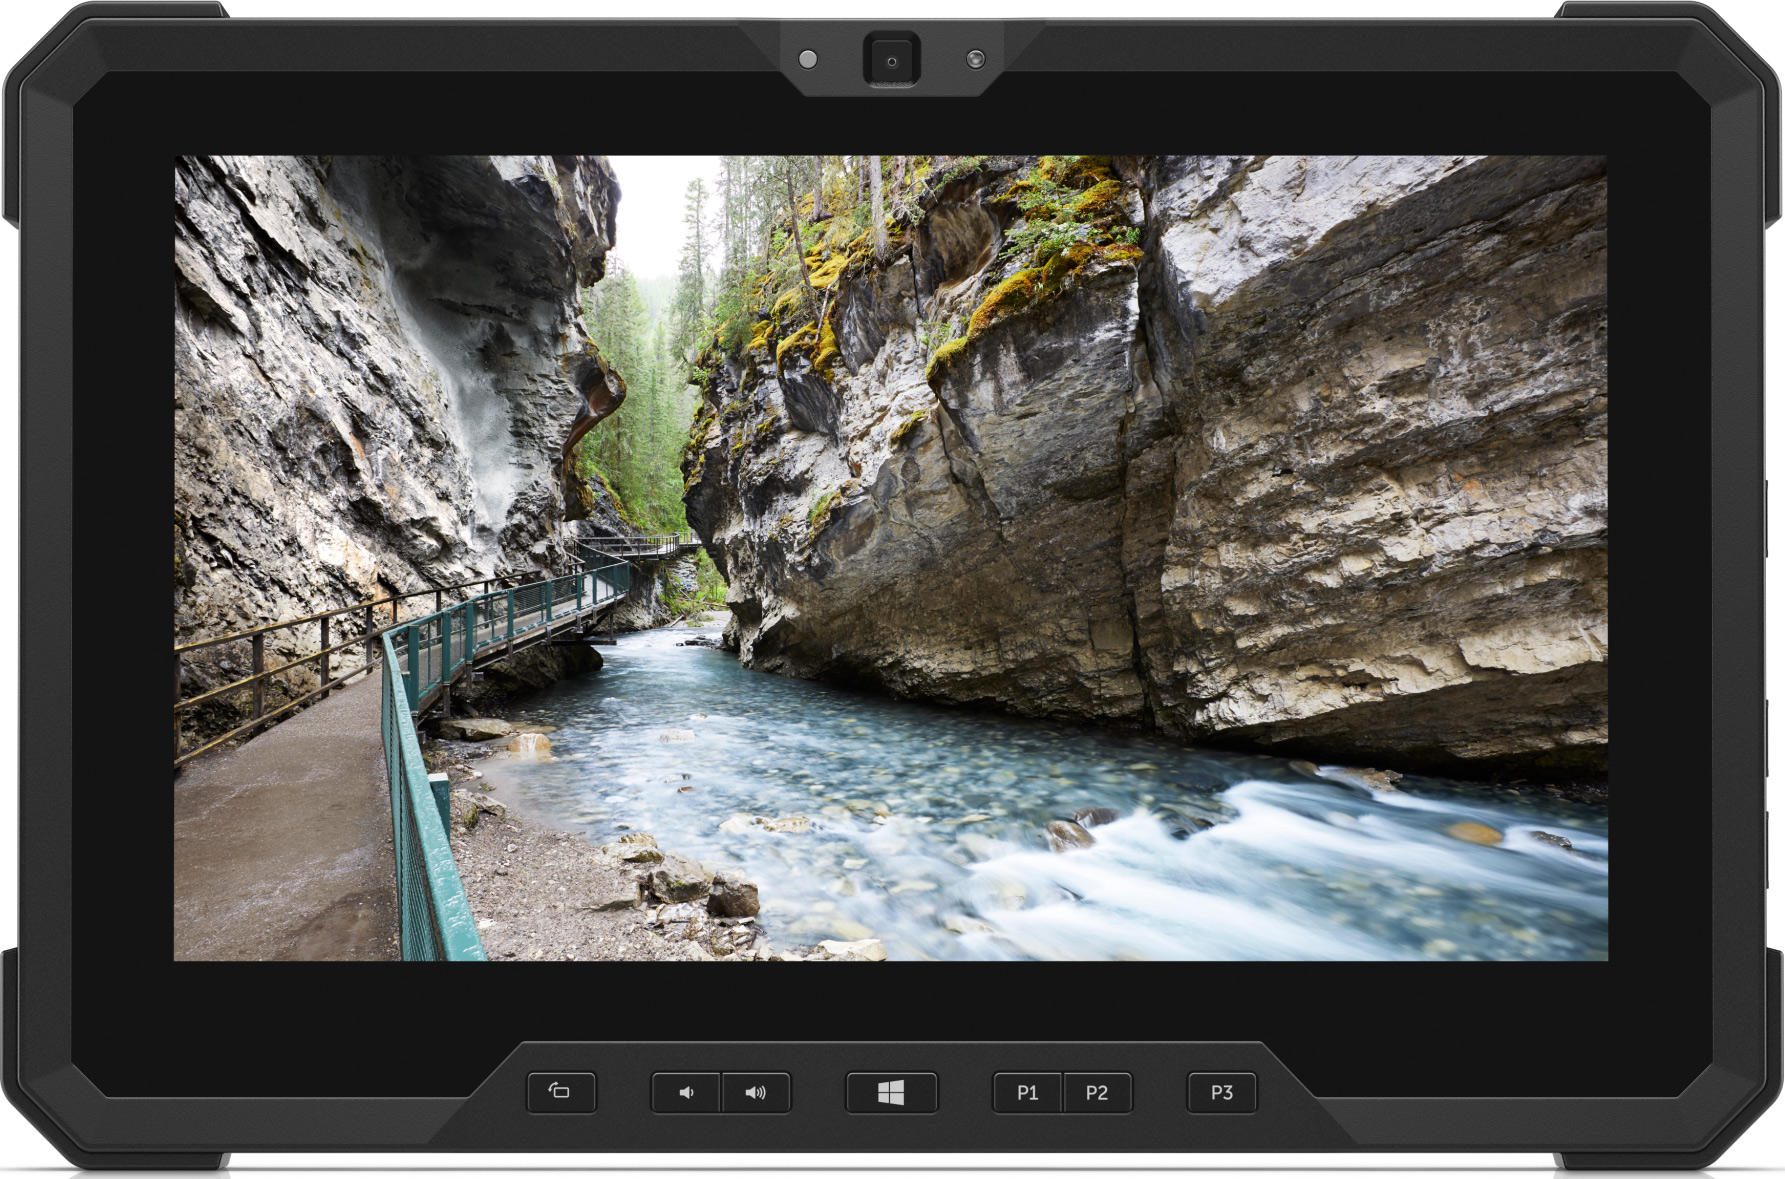 Dell Latitude 12 Updated: Rugged Tablet Gets Faster CPU, FHD